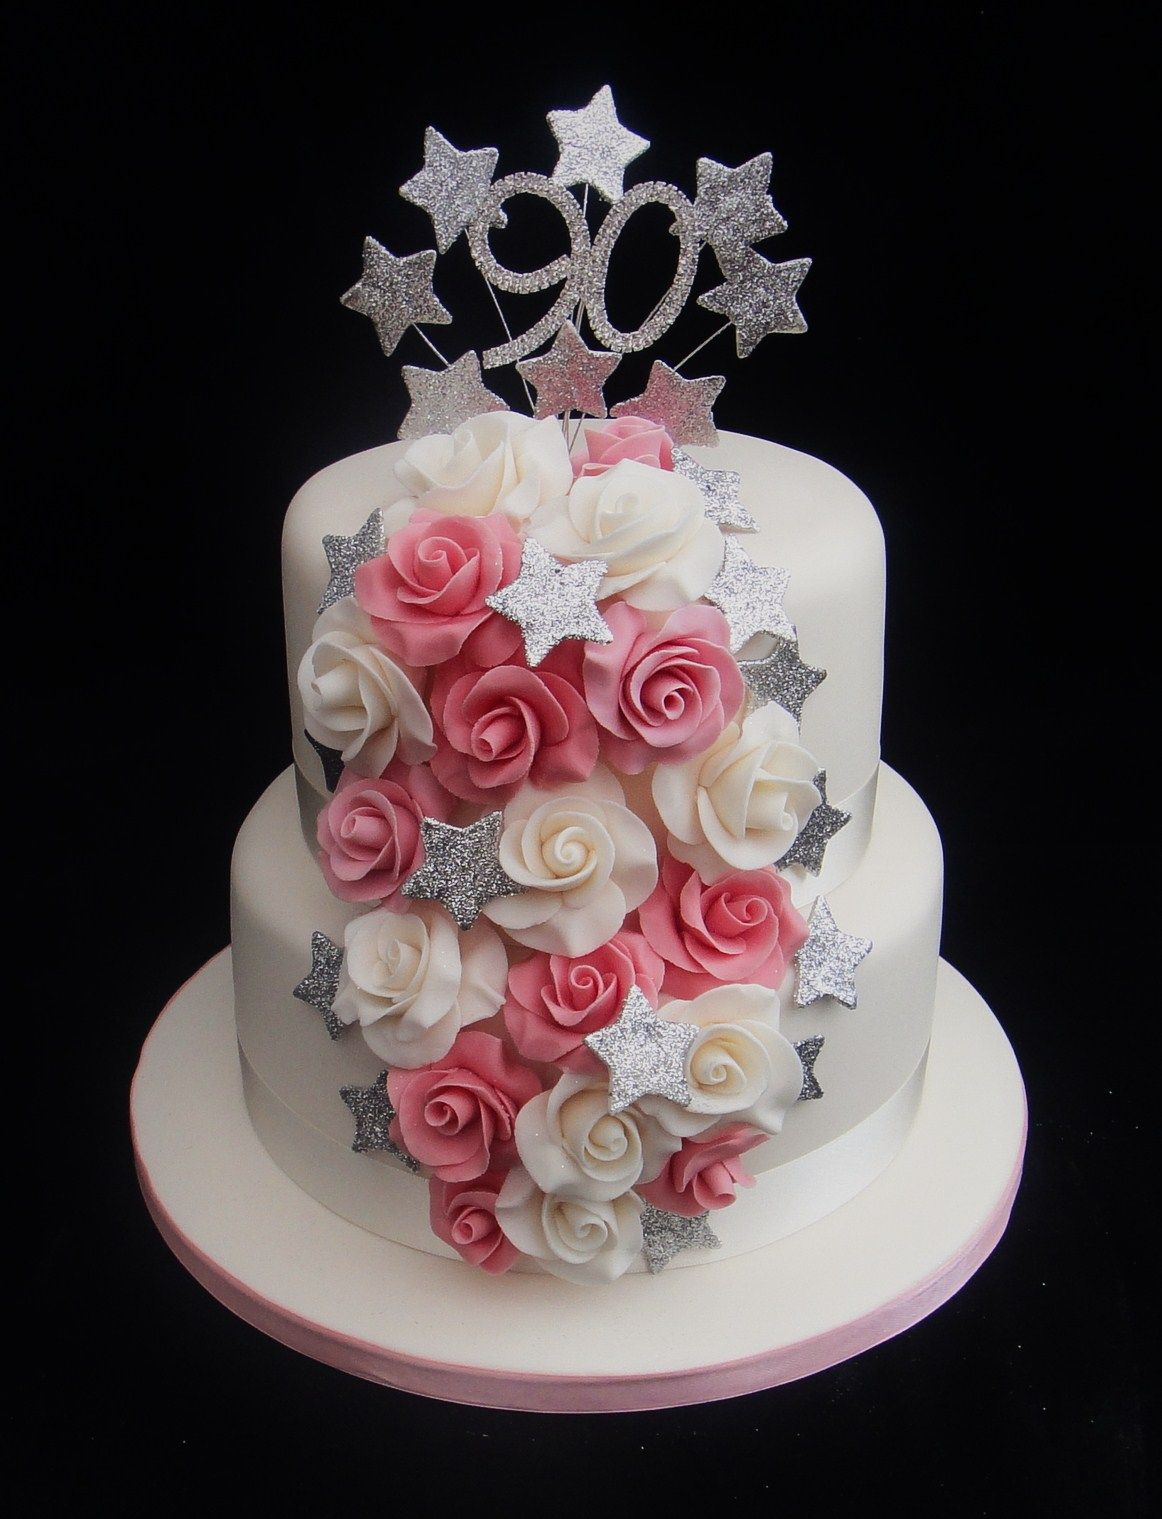 Hand Moulded Roses Birthday Cake 07917815712 www